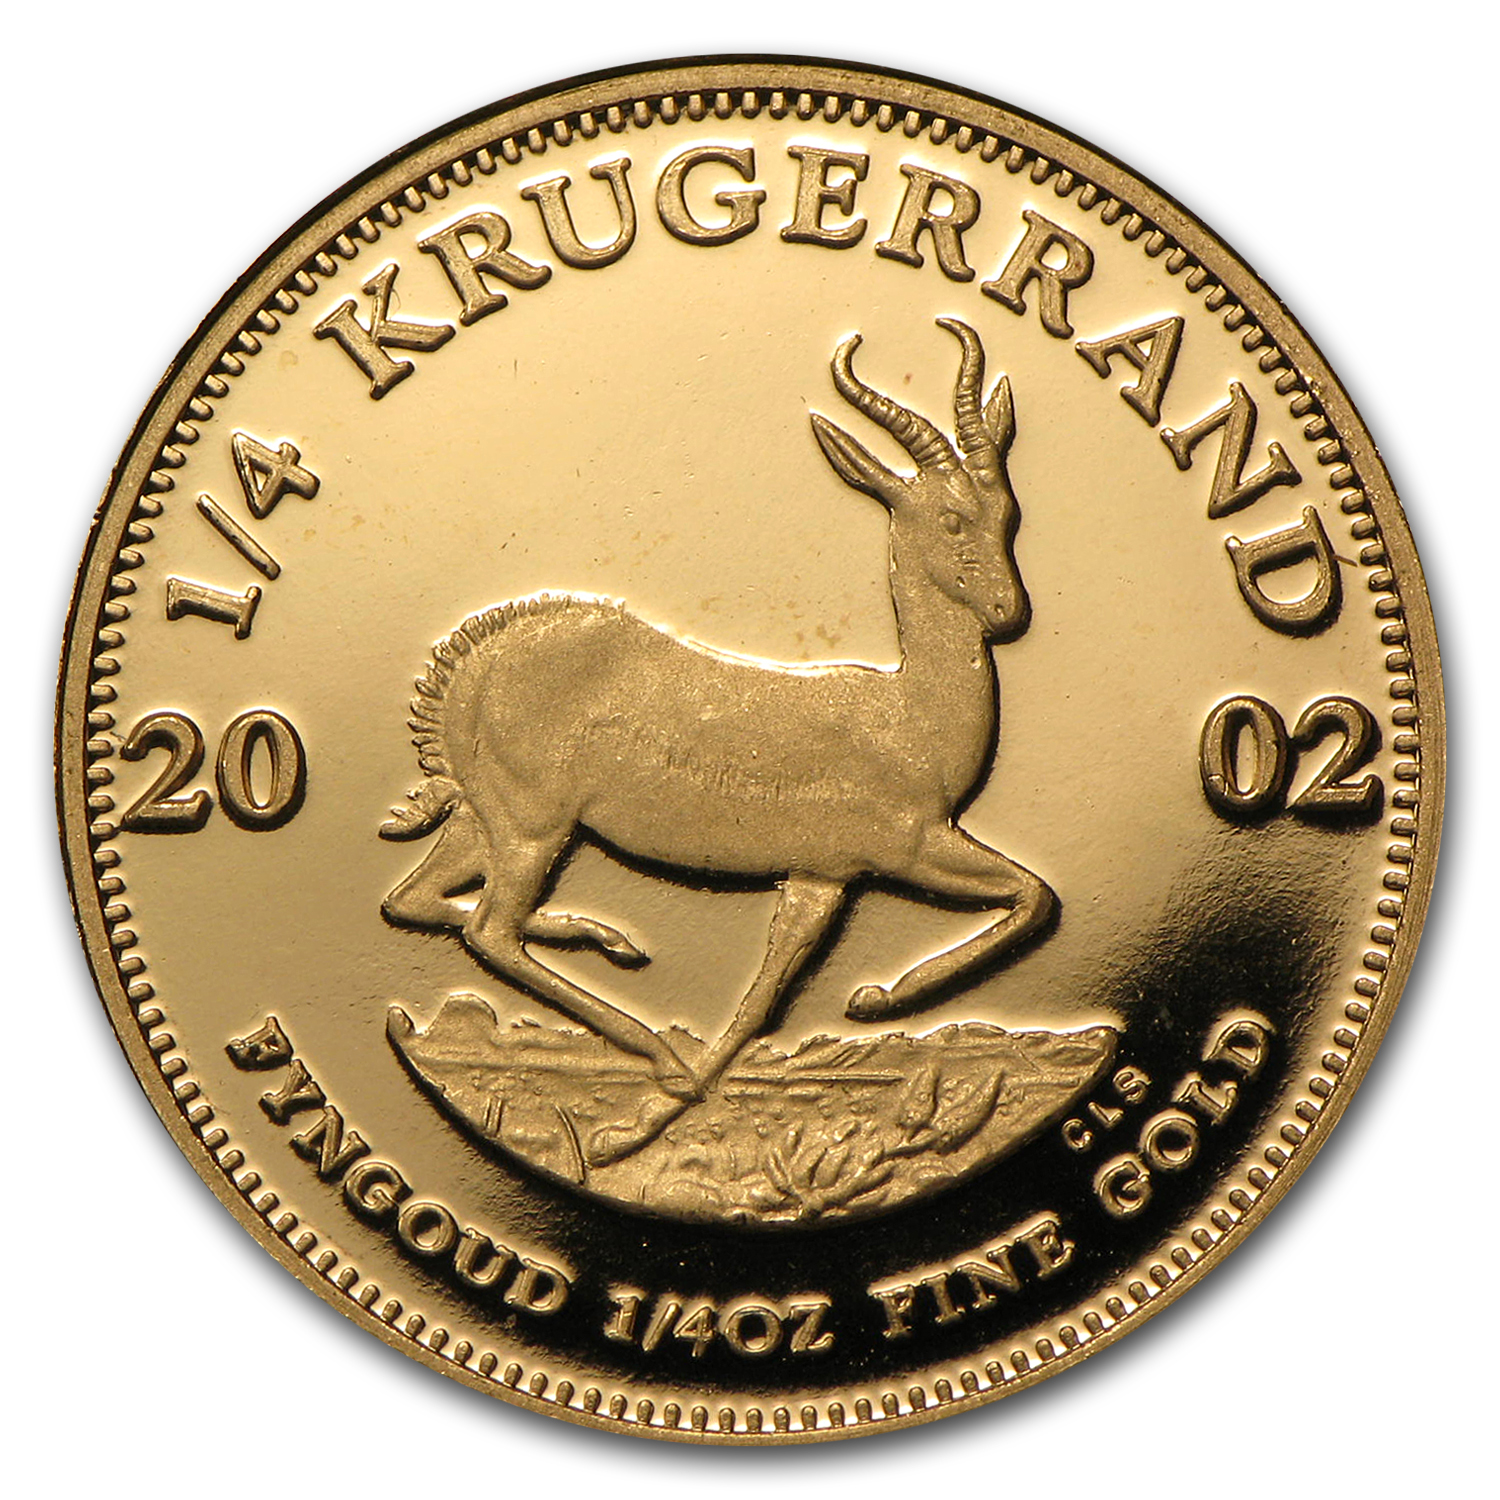 2002 1/4 oz Gold South African Krugerrand (Proof)